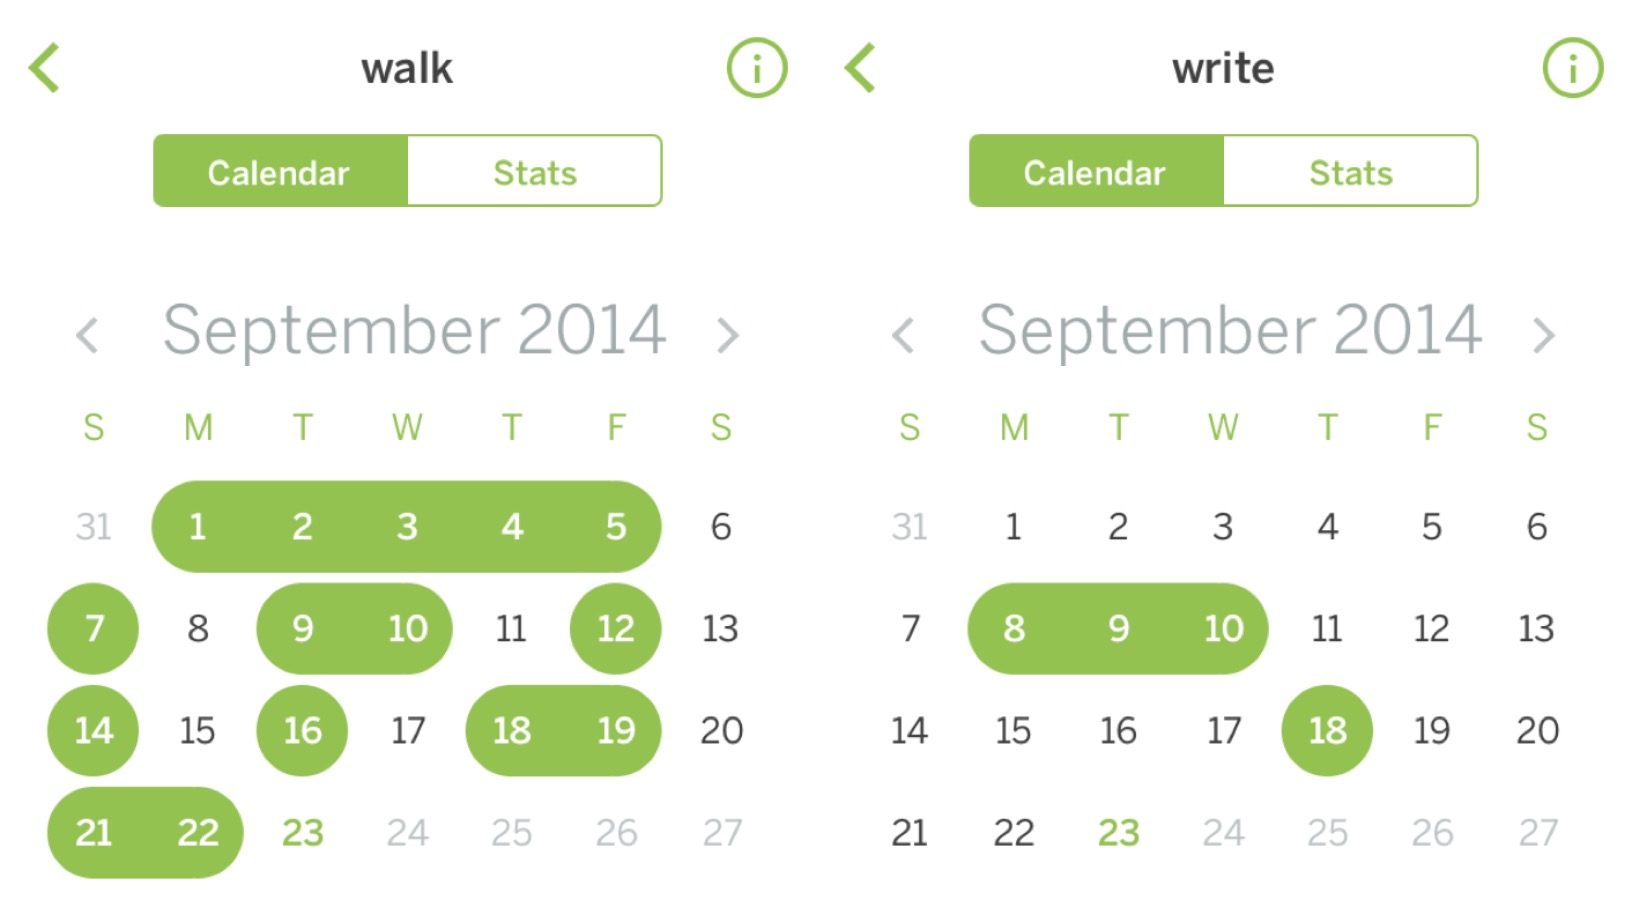 habit tracking | year of creative habits